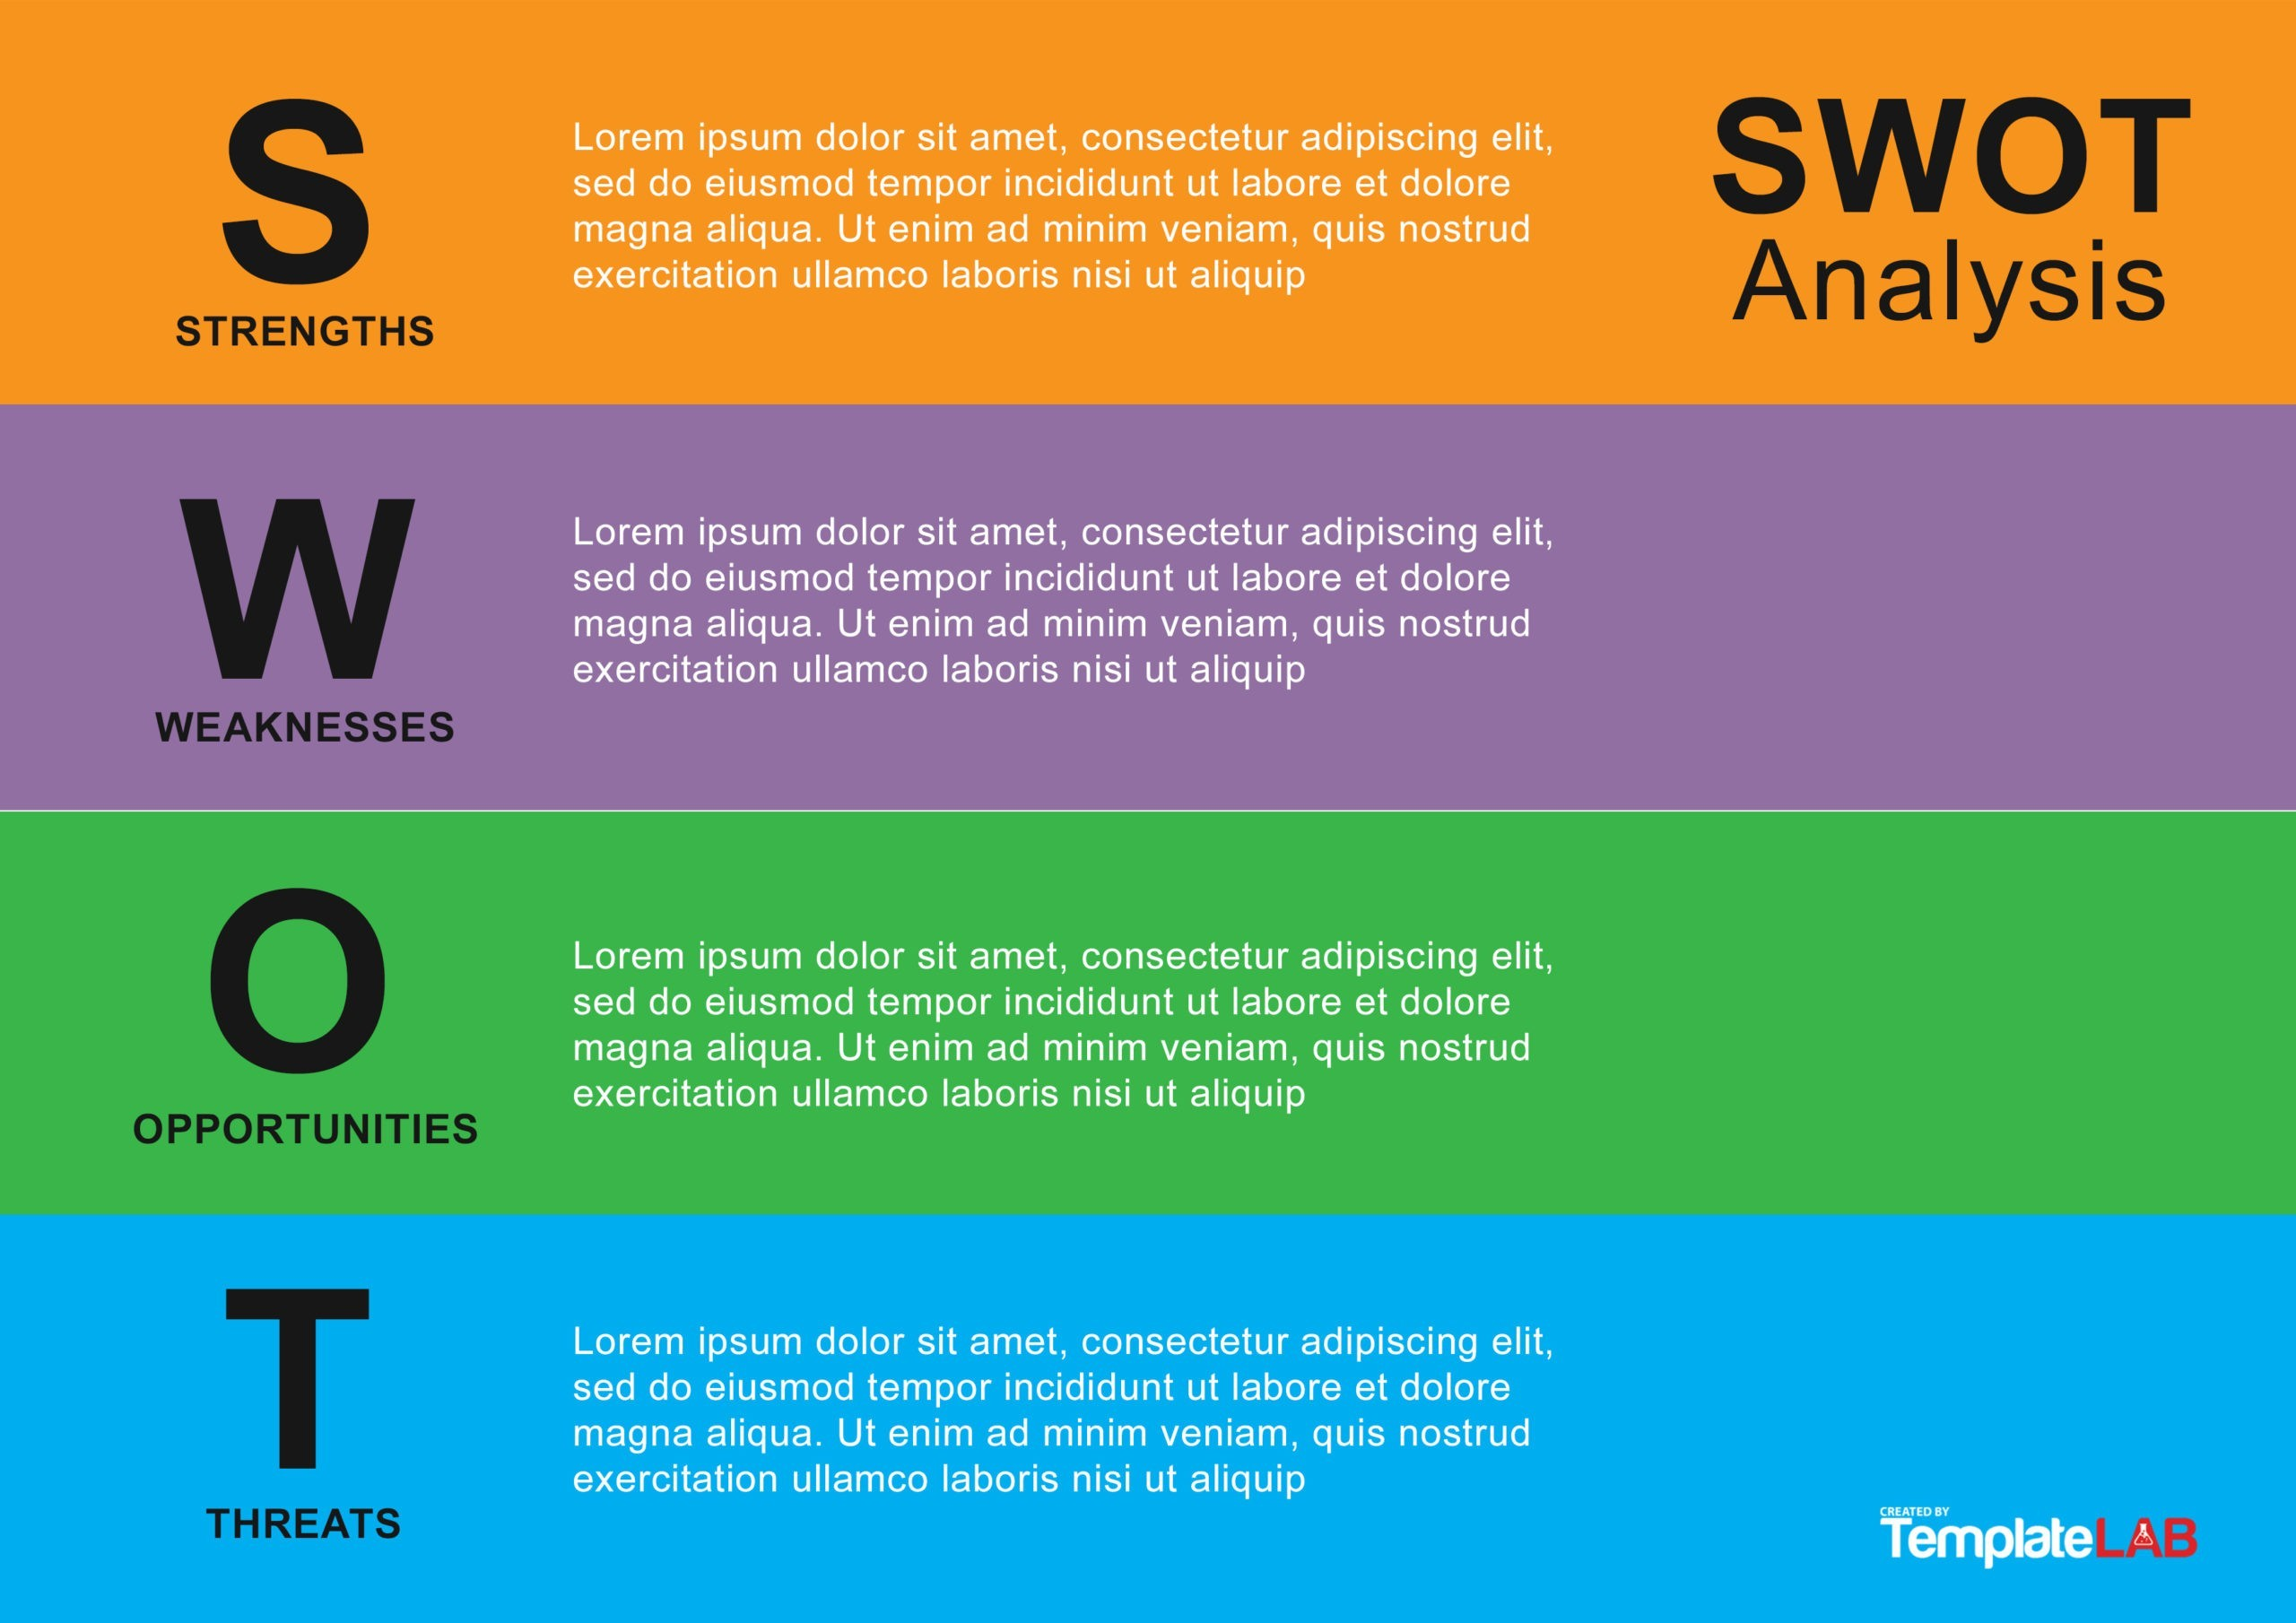 Swot Analysis Blank Template from templatelab.com